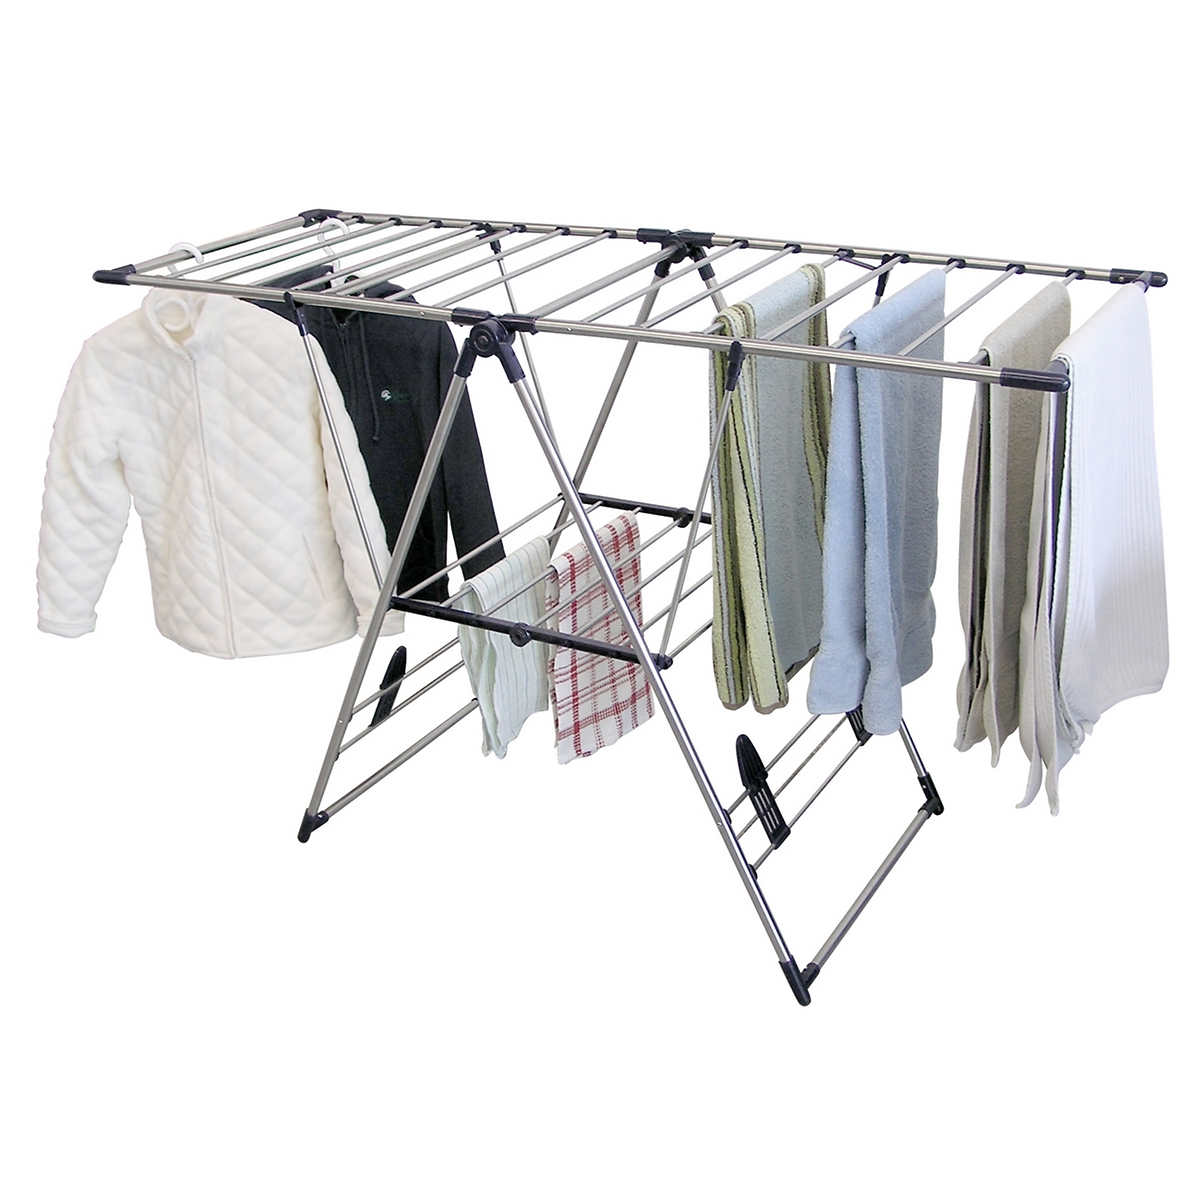 Neatfreak laundry drying rack compact cleaning amp organizing for - Greenway Home Products X Large Stainless Steel Fold Away Laundry Rack